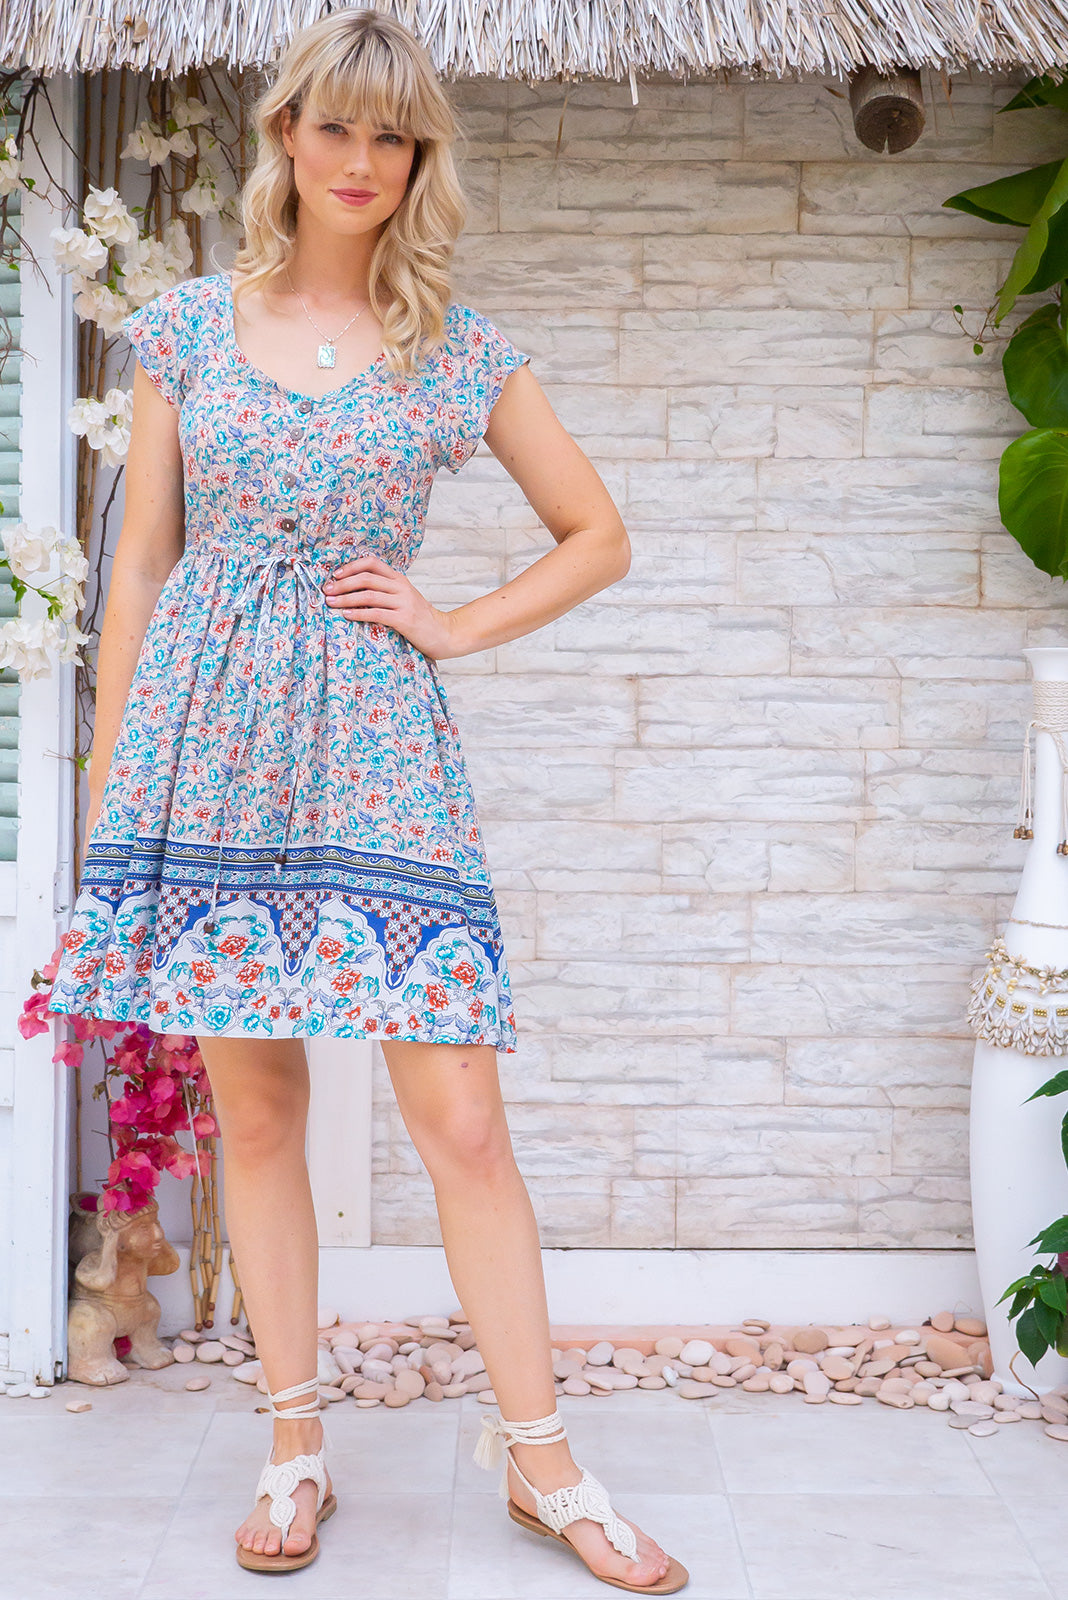 Juniper Sonnet Cream Dress, bohemian summer style, 100% rayon, functional button down to waistline, cap sleeves, side pockets, adjustable drawstring waist, cream base with small orange, teal and blue wildflower print, complimentary border print.